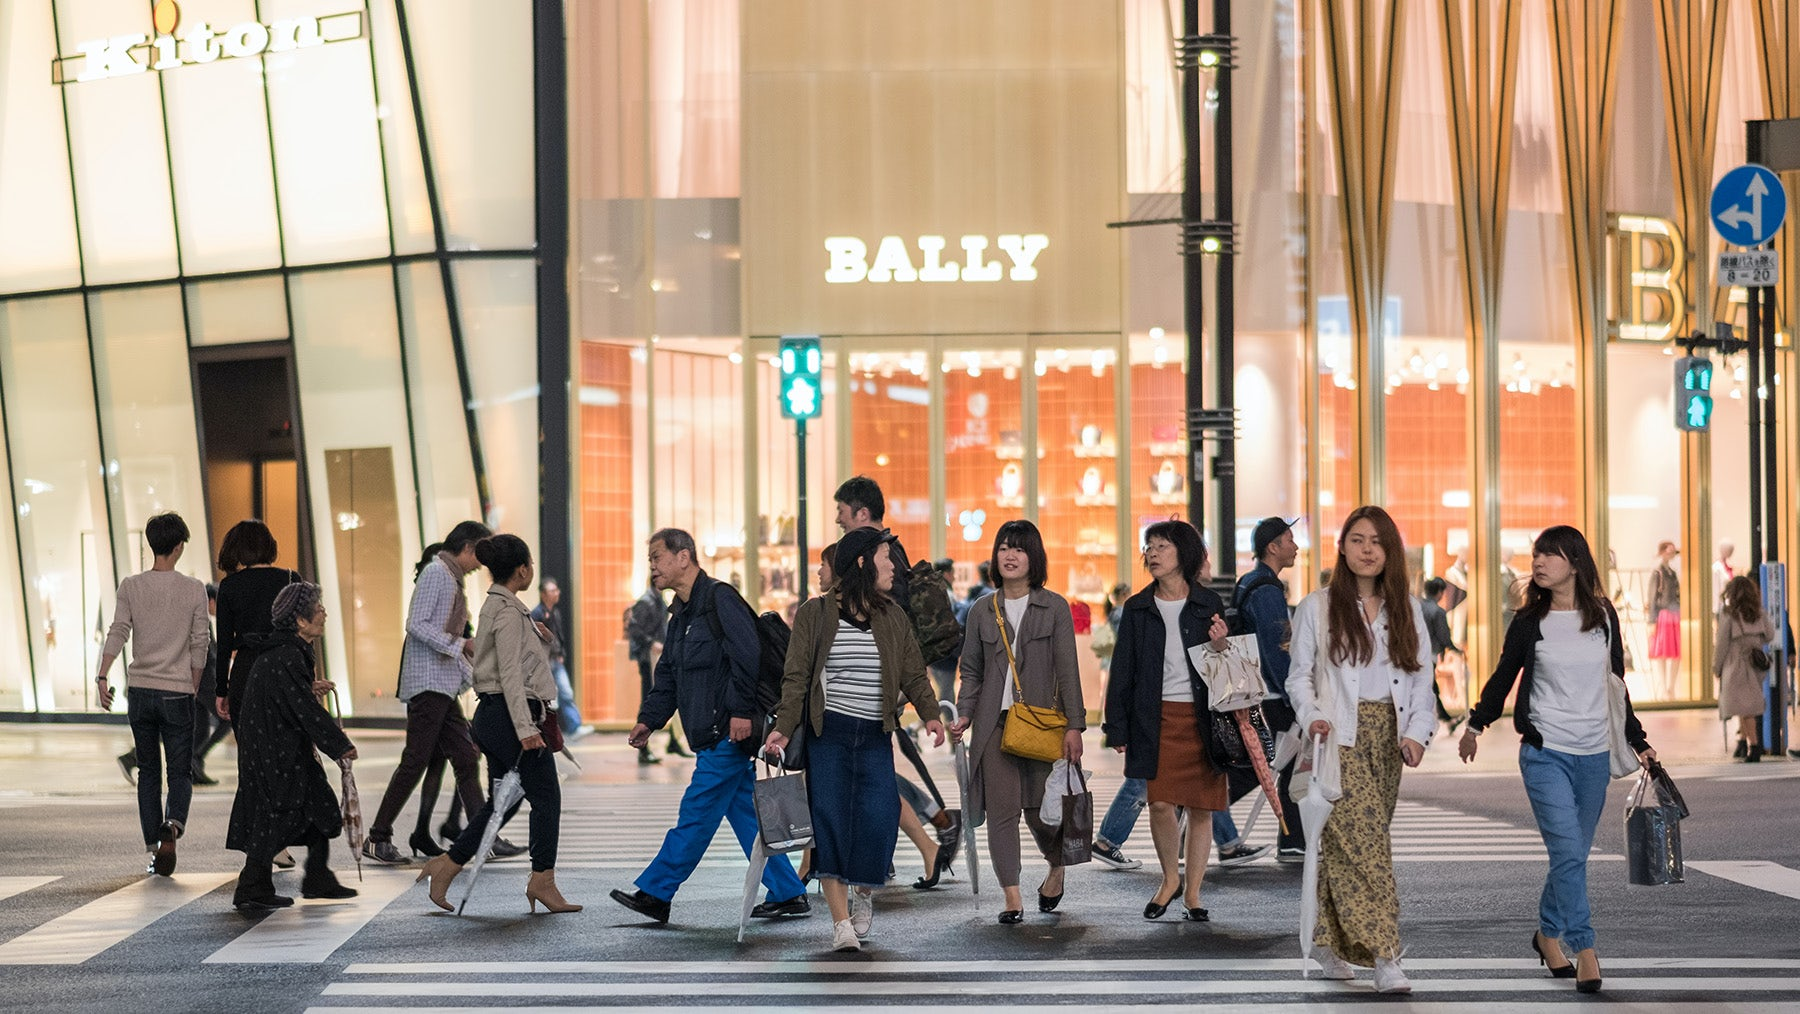 Bally store in Tokyo | Source: Shutterstock